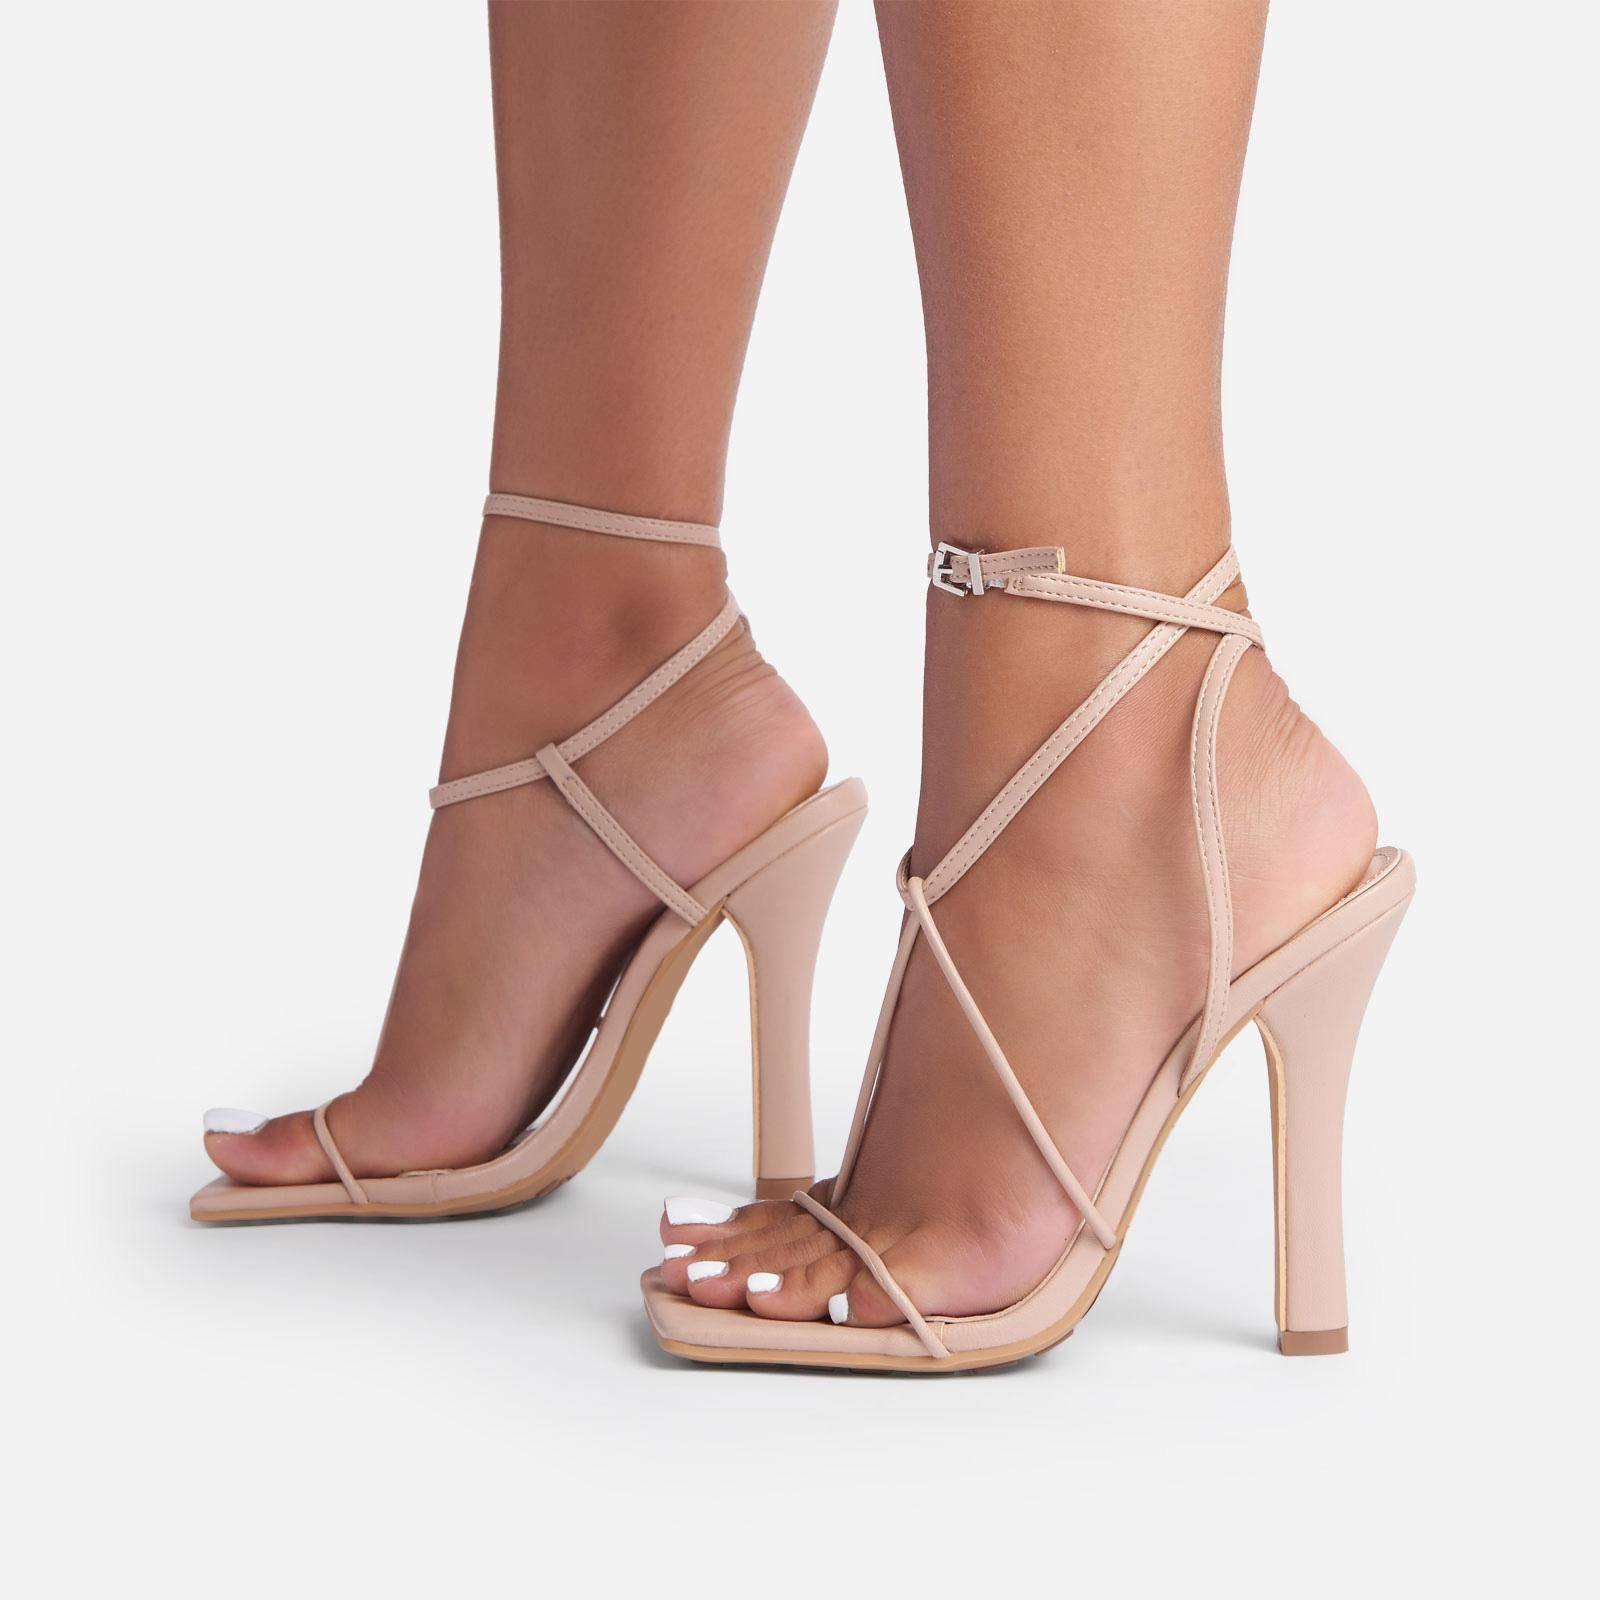 EGO Glambition Strappy Square Toe Track Sole Heel In Nude Faux Leather, Nude  - female - Size: 8